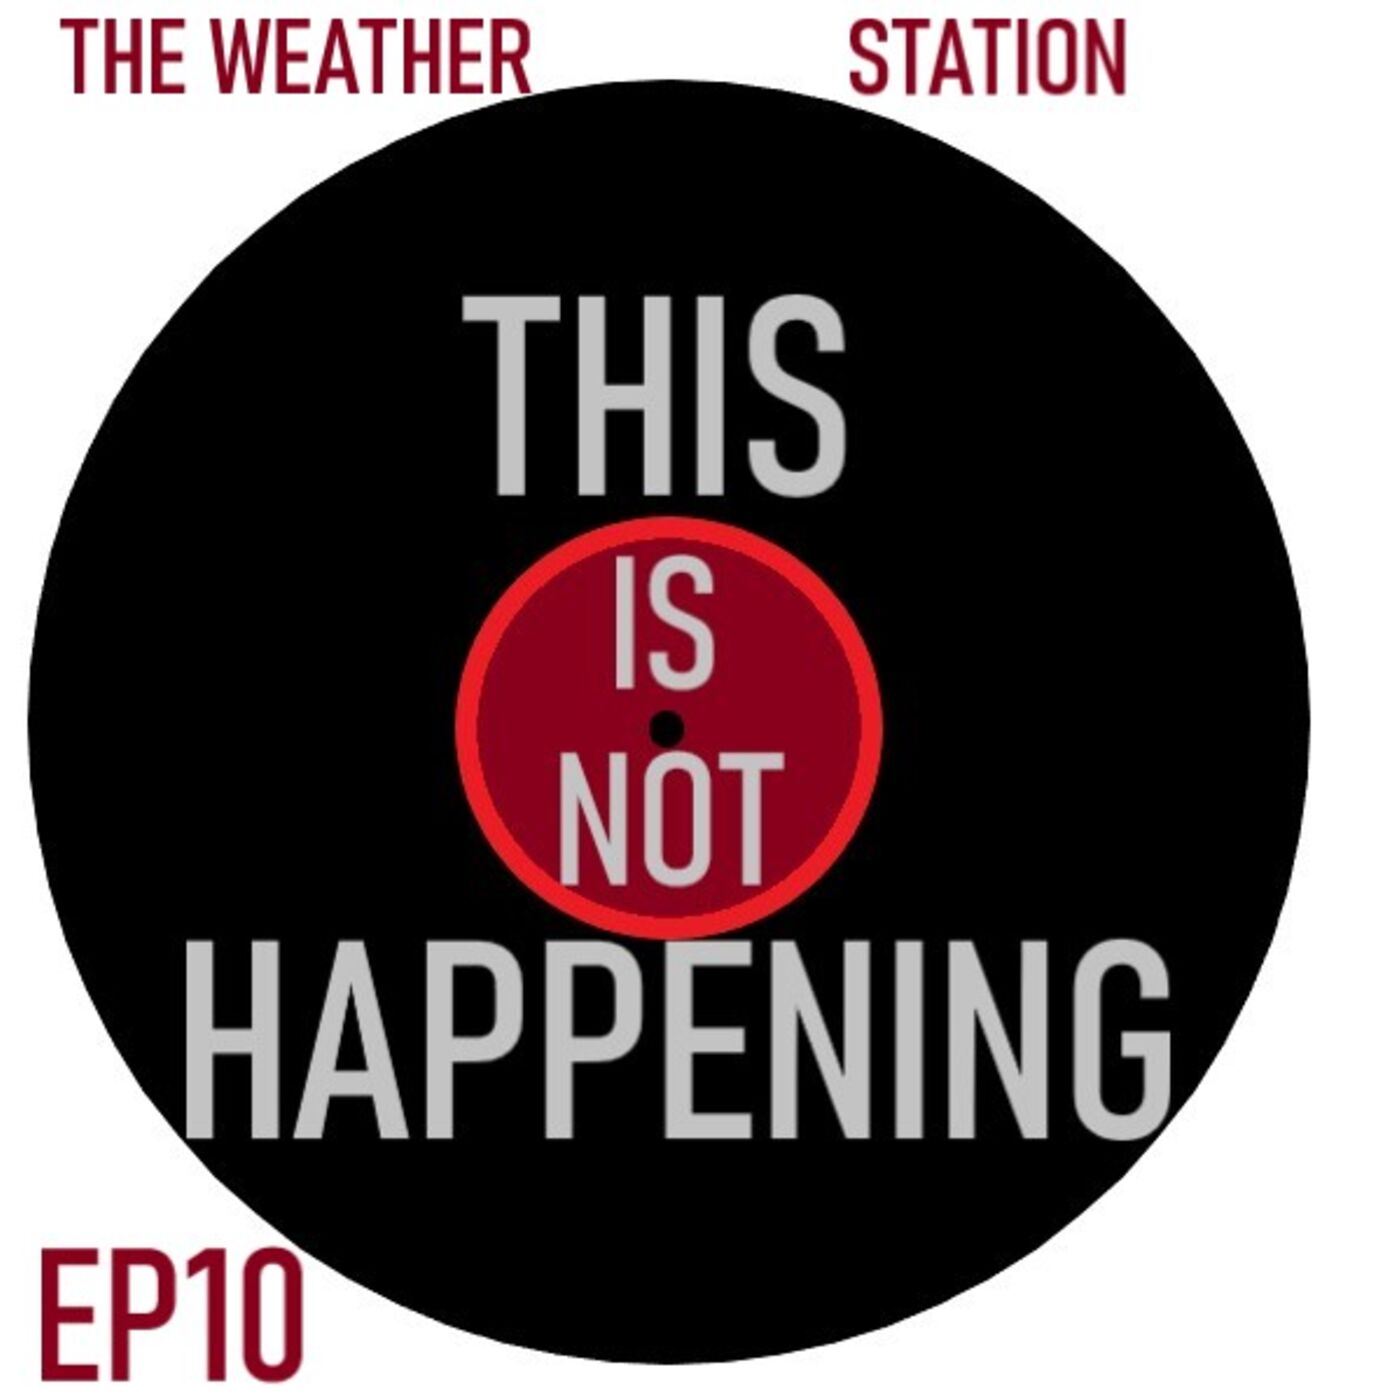 Ep 10 - The Weather Station - Ignorance